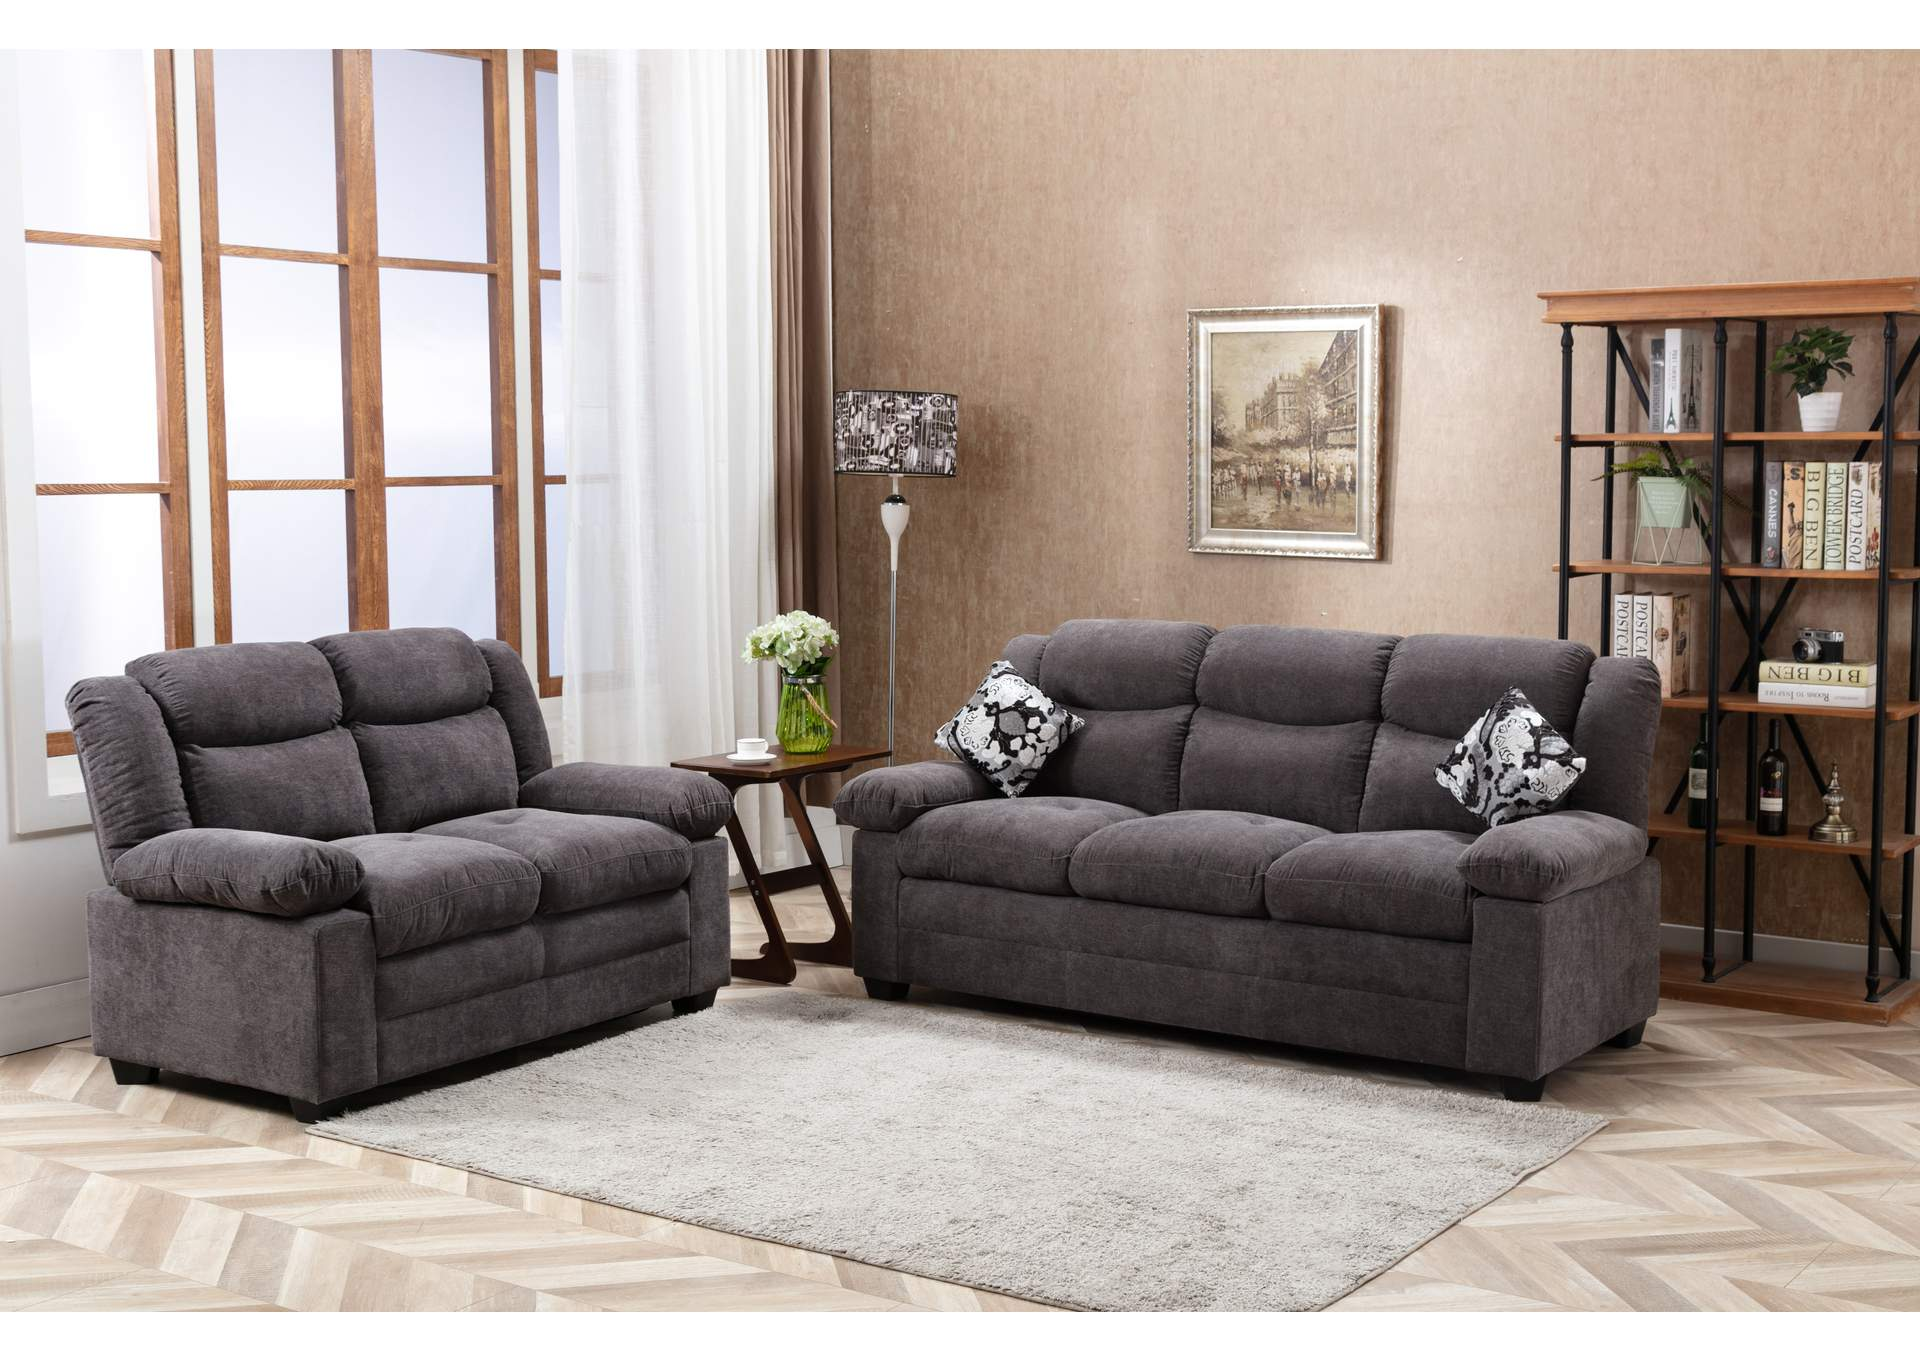 Silver Grey Reclining Sofa,Global Trading